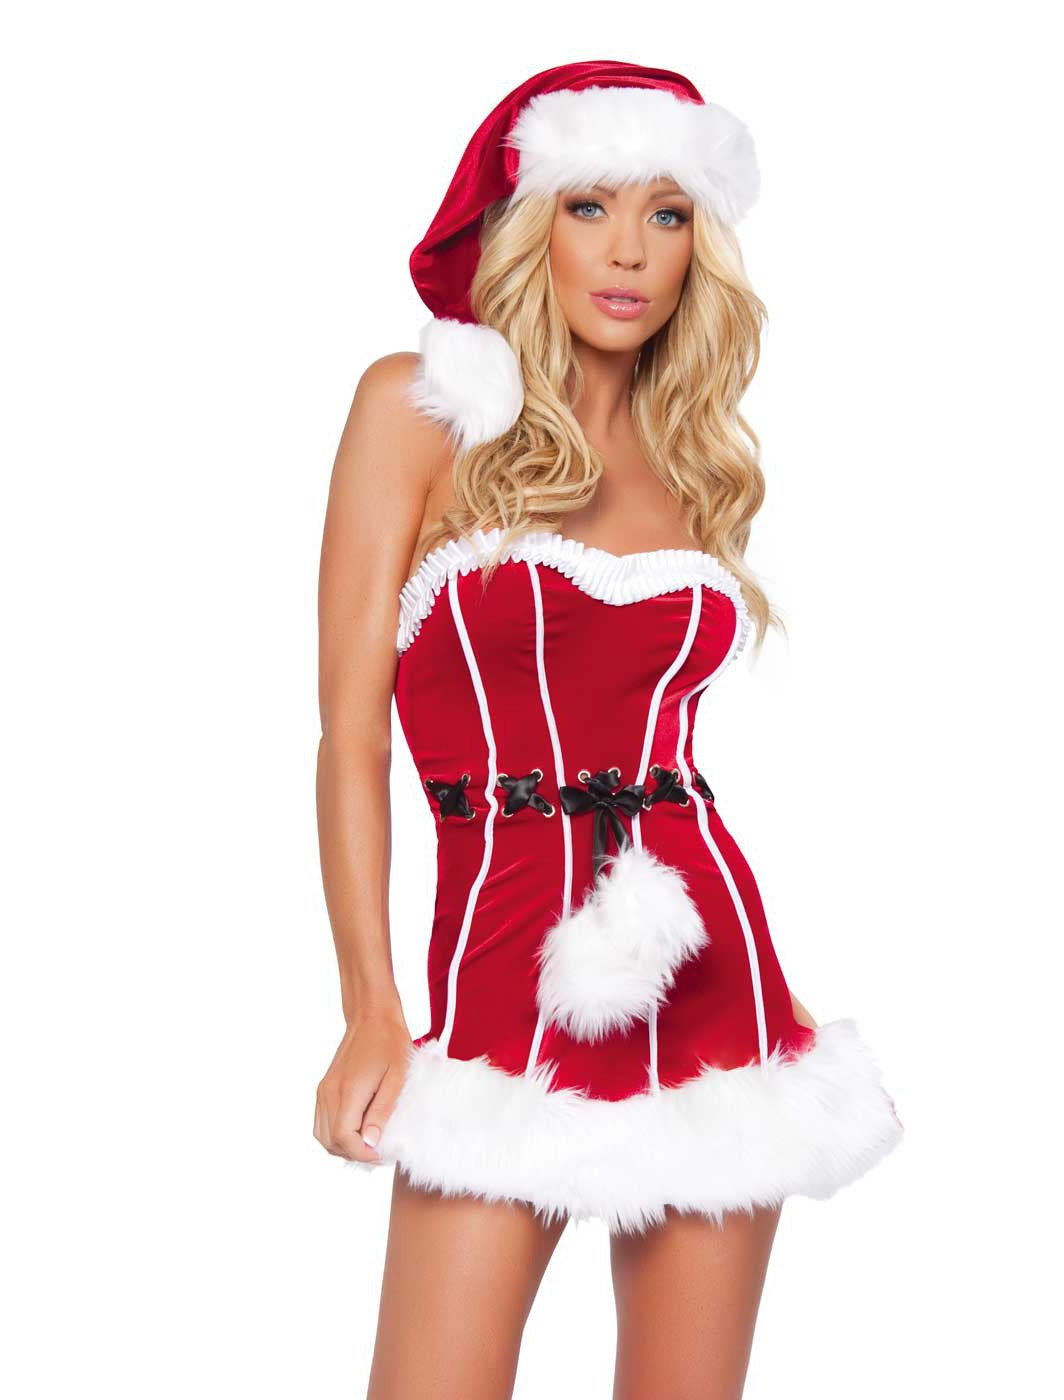 Santa Lingerie: Sexy or Ugly?